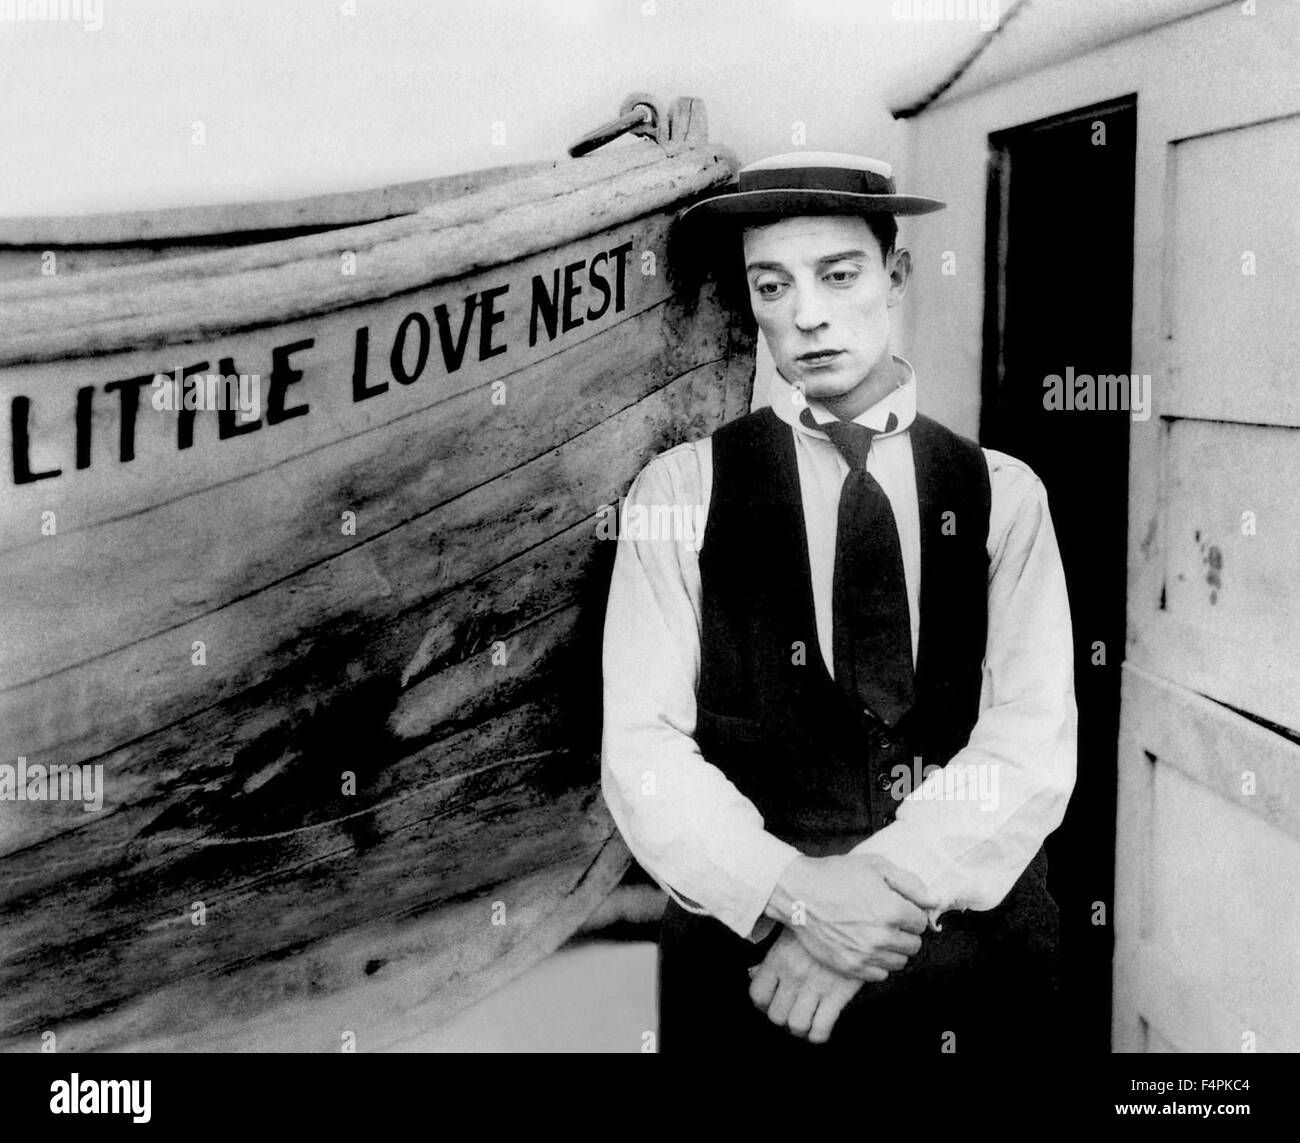 Buster Keaton / The Love Nest / 1923 directed by Buster Keaton  [Associated-First National Pictur] - Stock Image